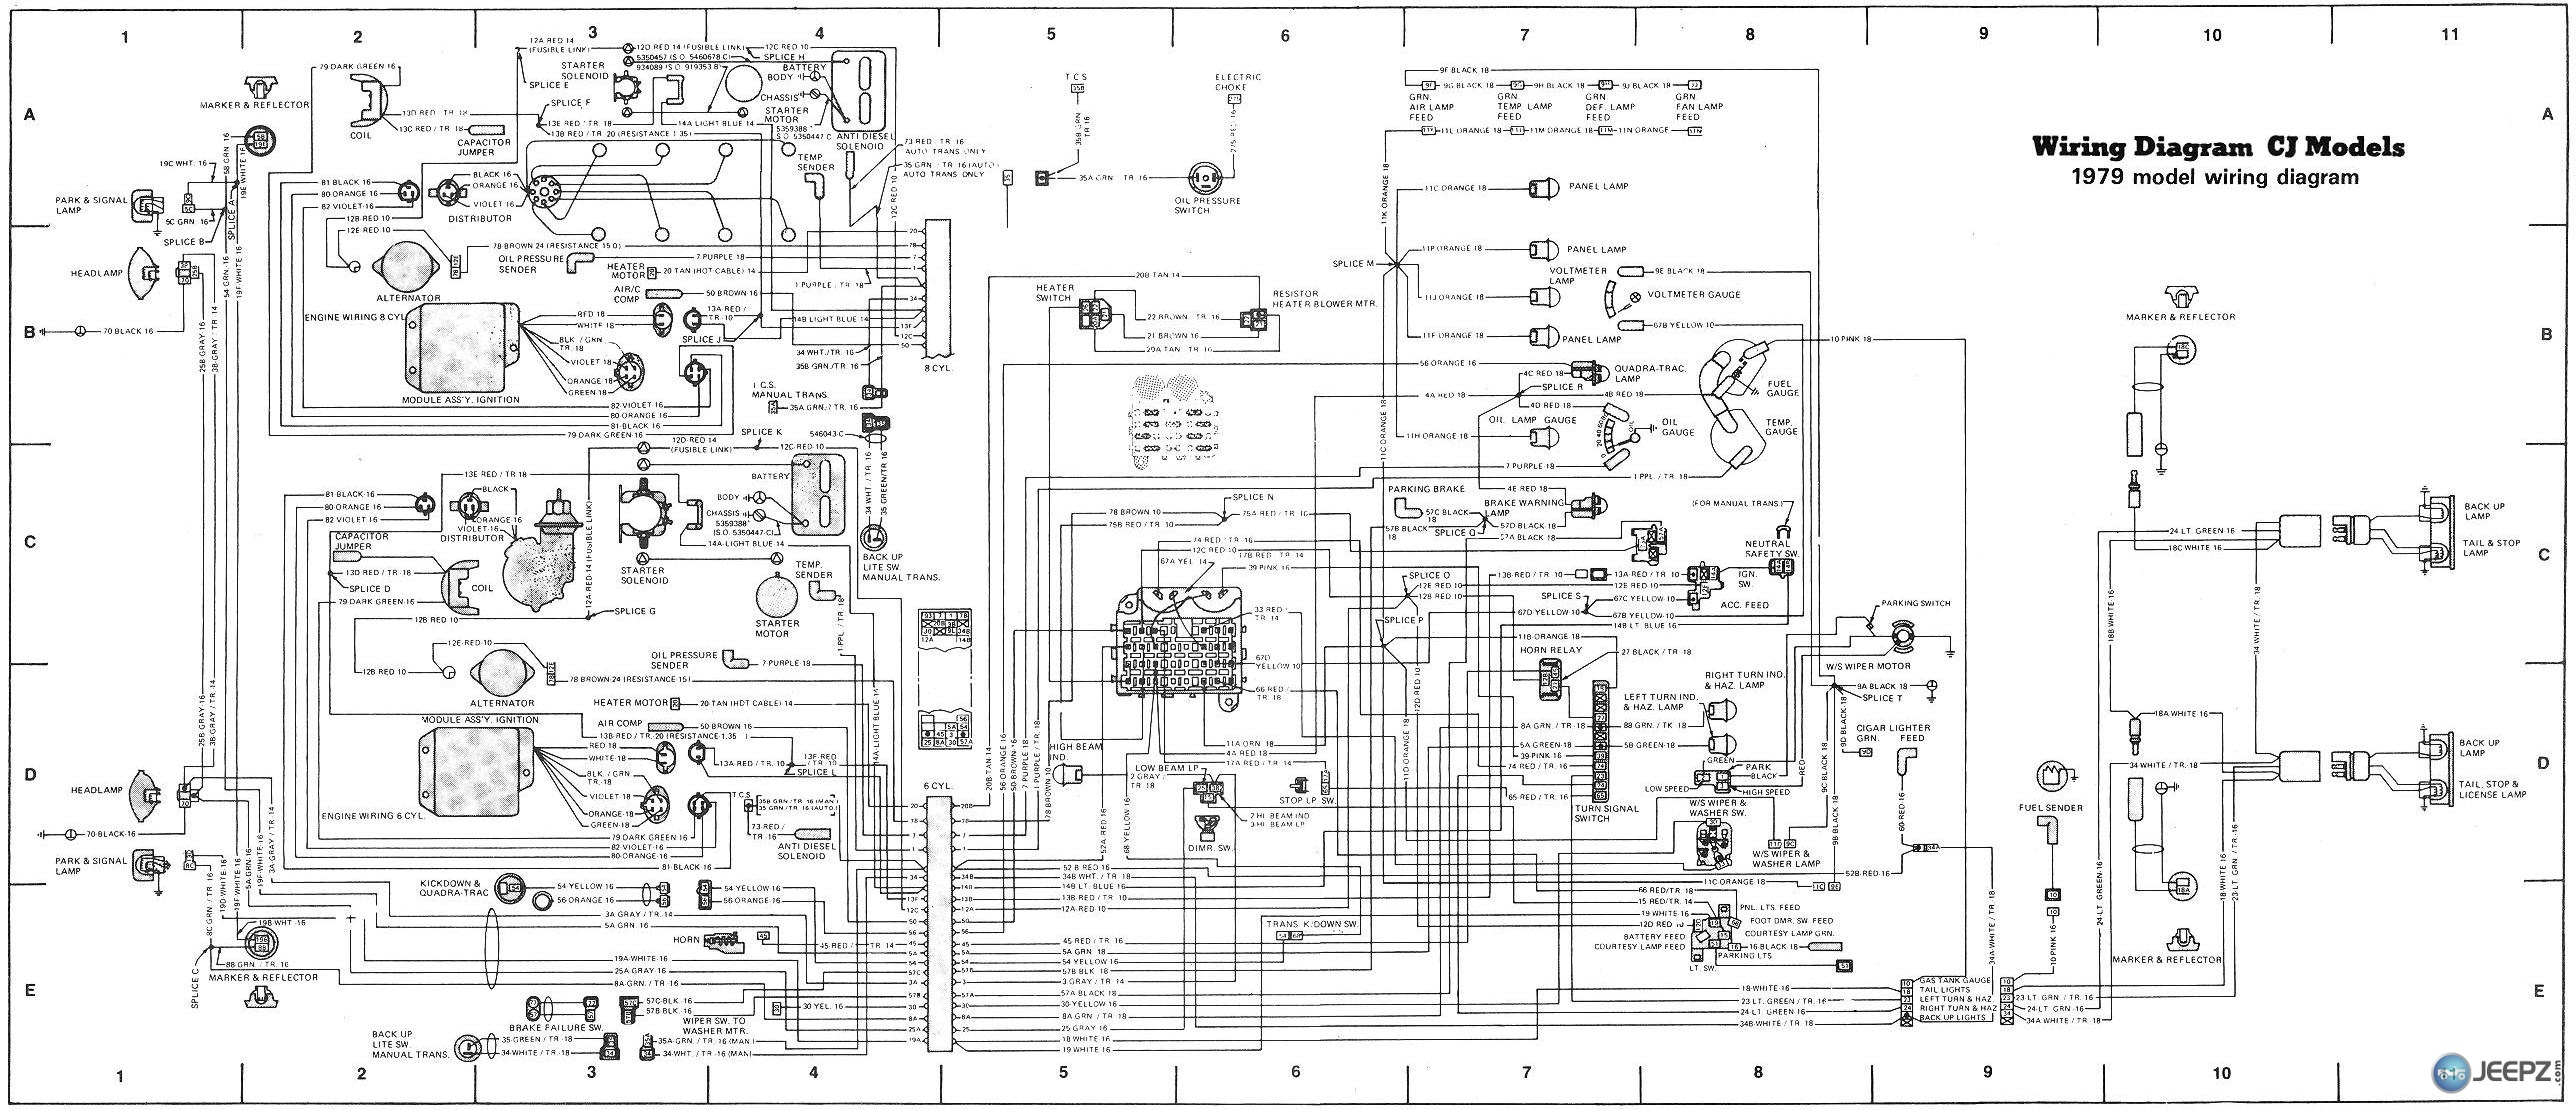 wiring diagram for a sony xplod 52wx4 the wiring diagram sony xplod wire diagram nilza wiring diagram